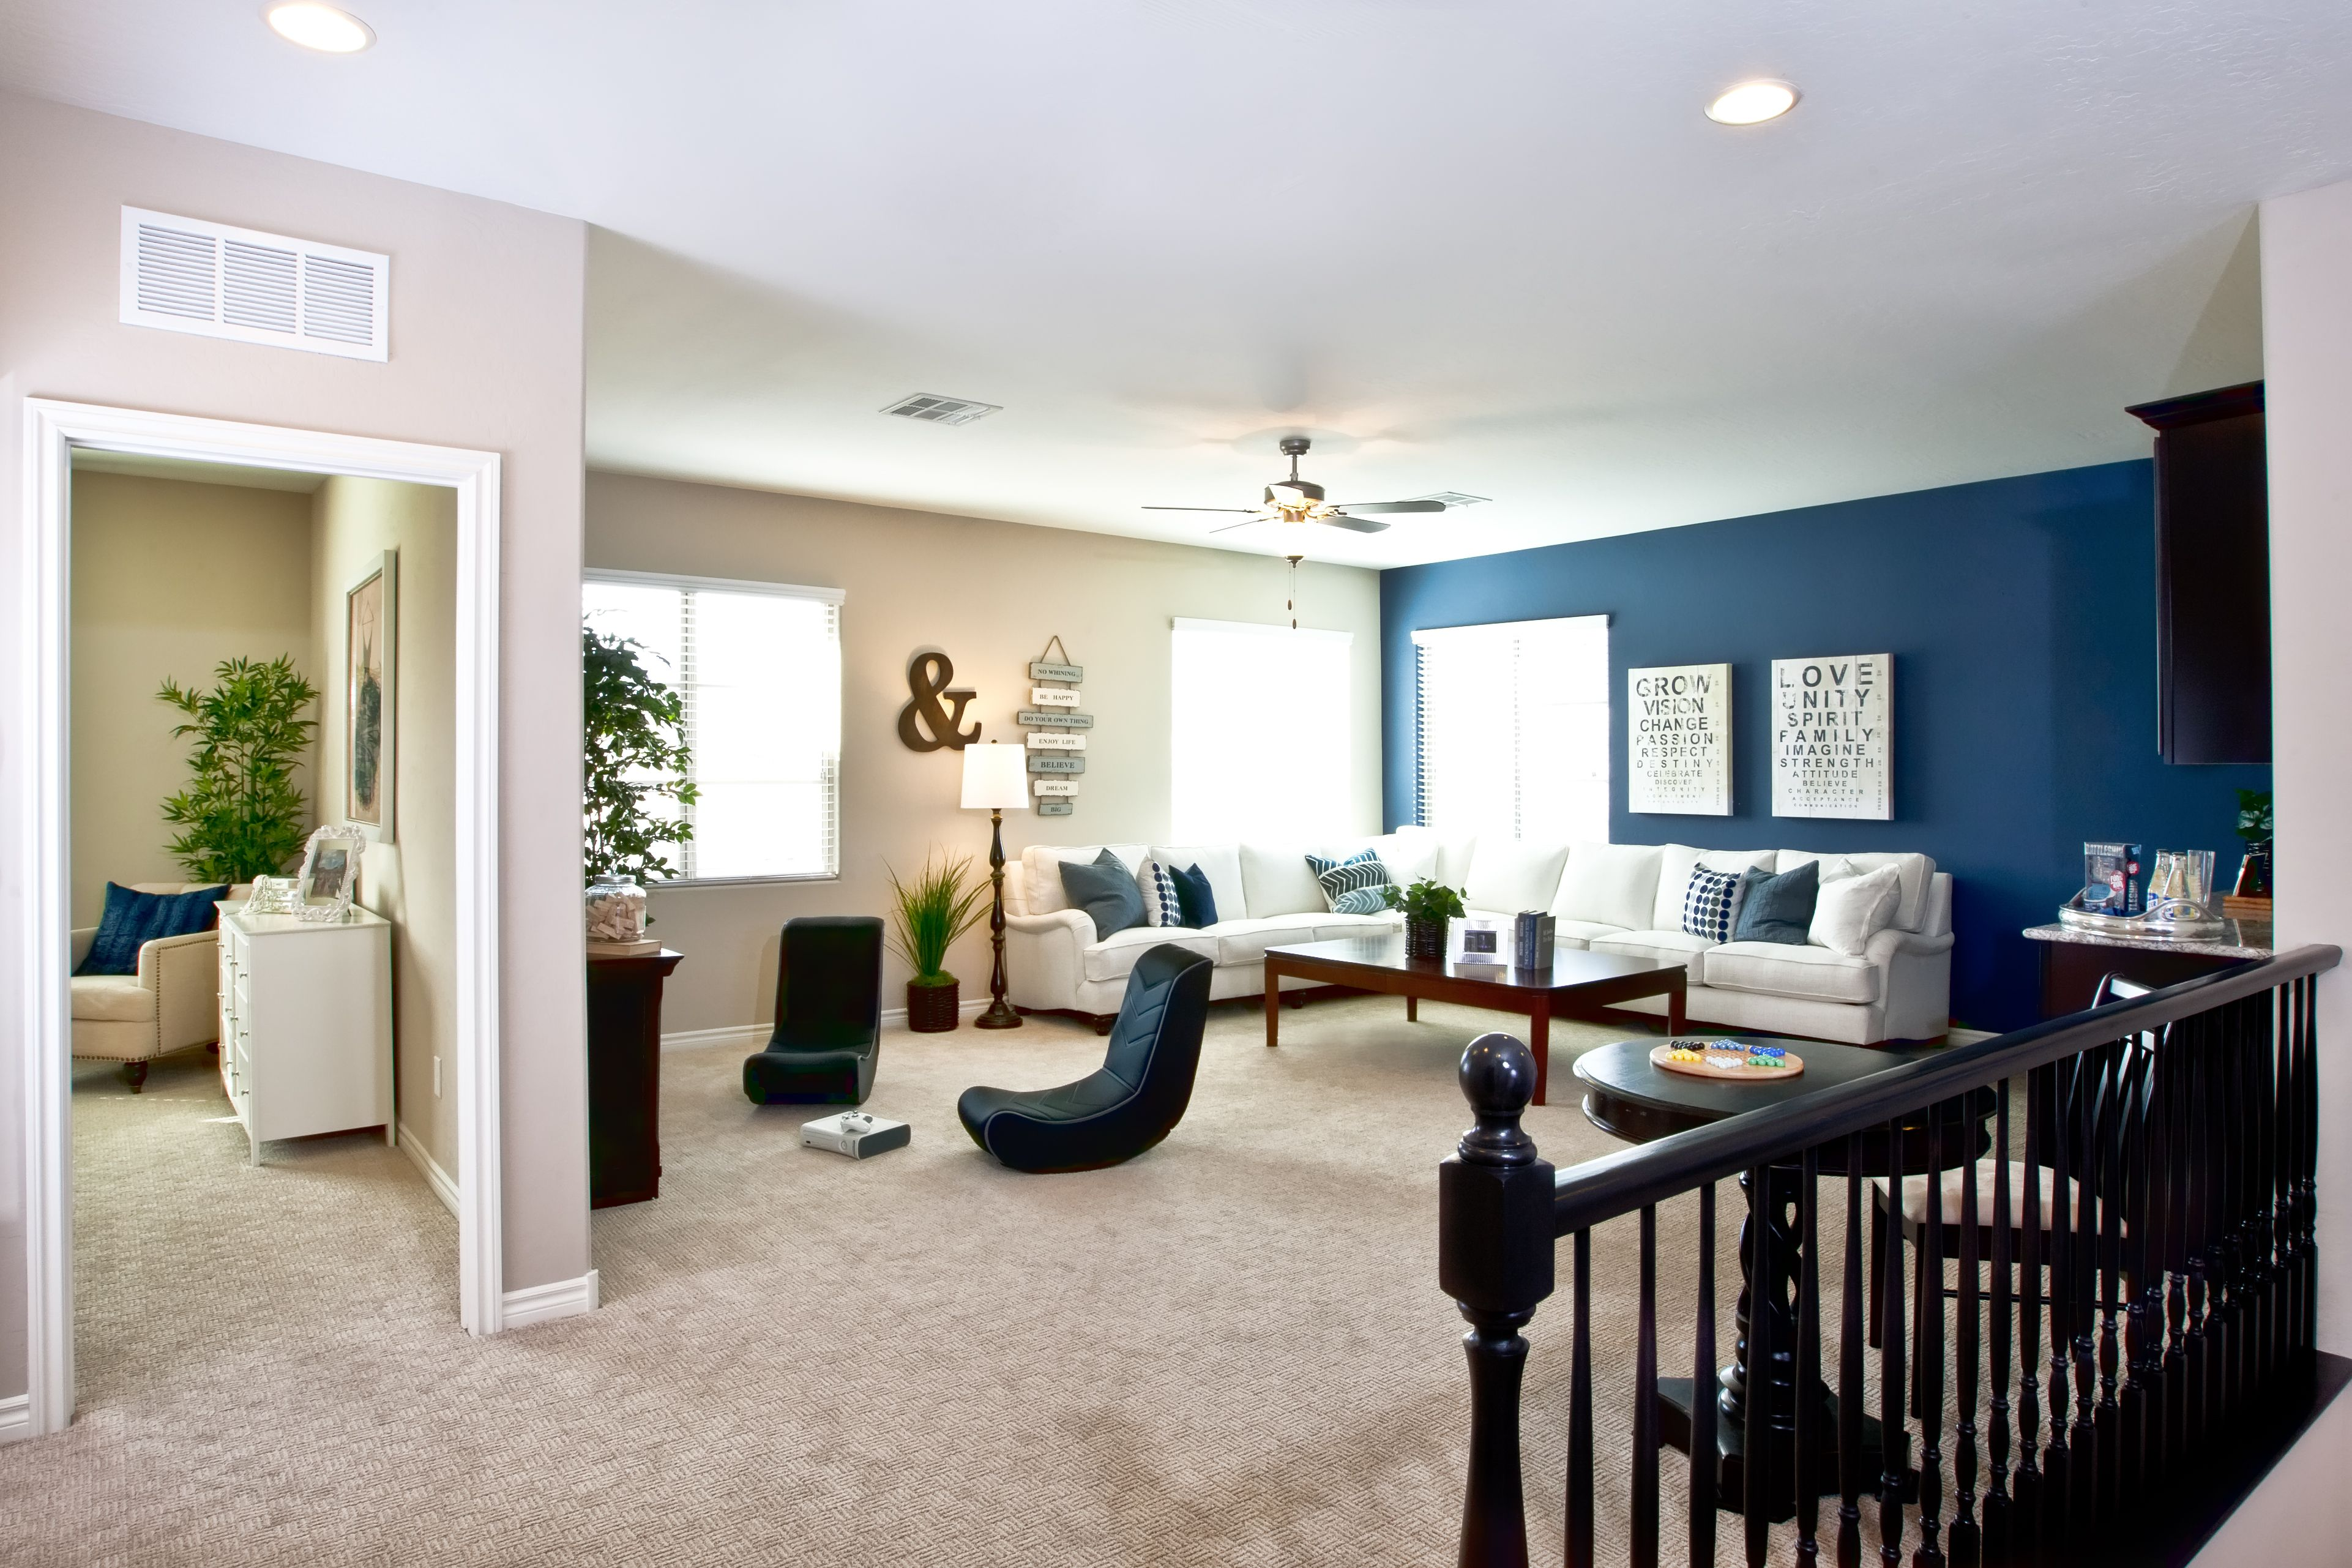 Planning on a nautical-themed family room? Sneak a peek at this spacious loft area from a model in our Catalina community for ideas!